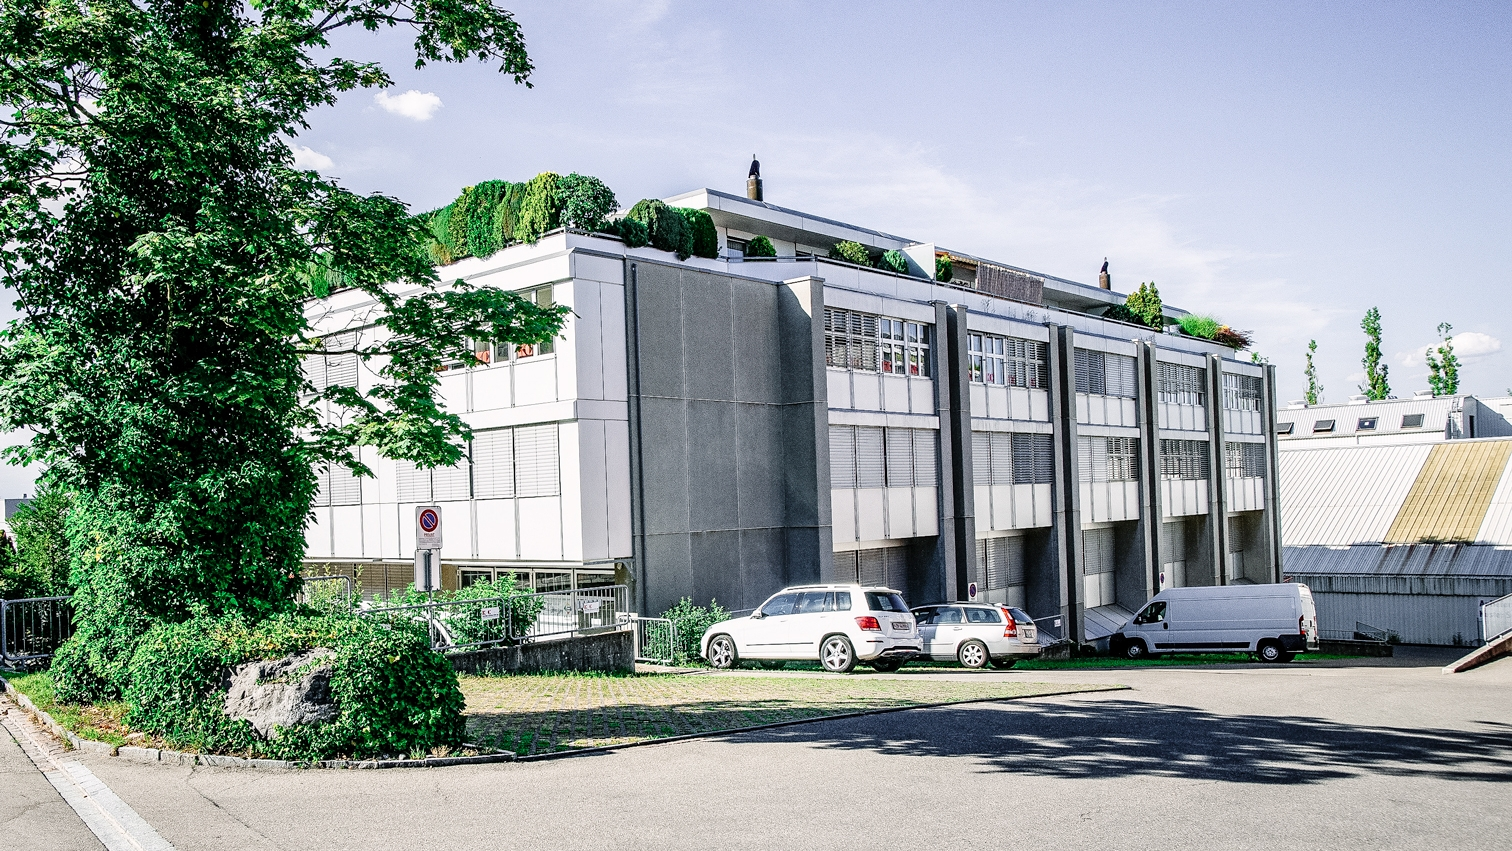 Boll_Immobilien_Thalwil_Gewerbe_04.jpg